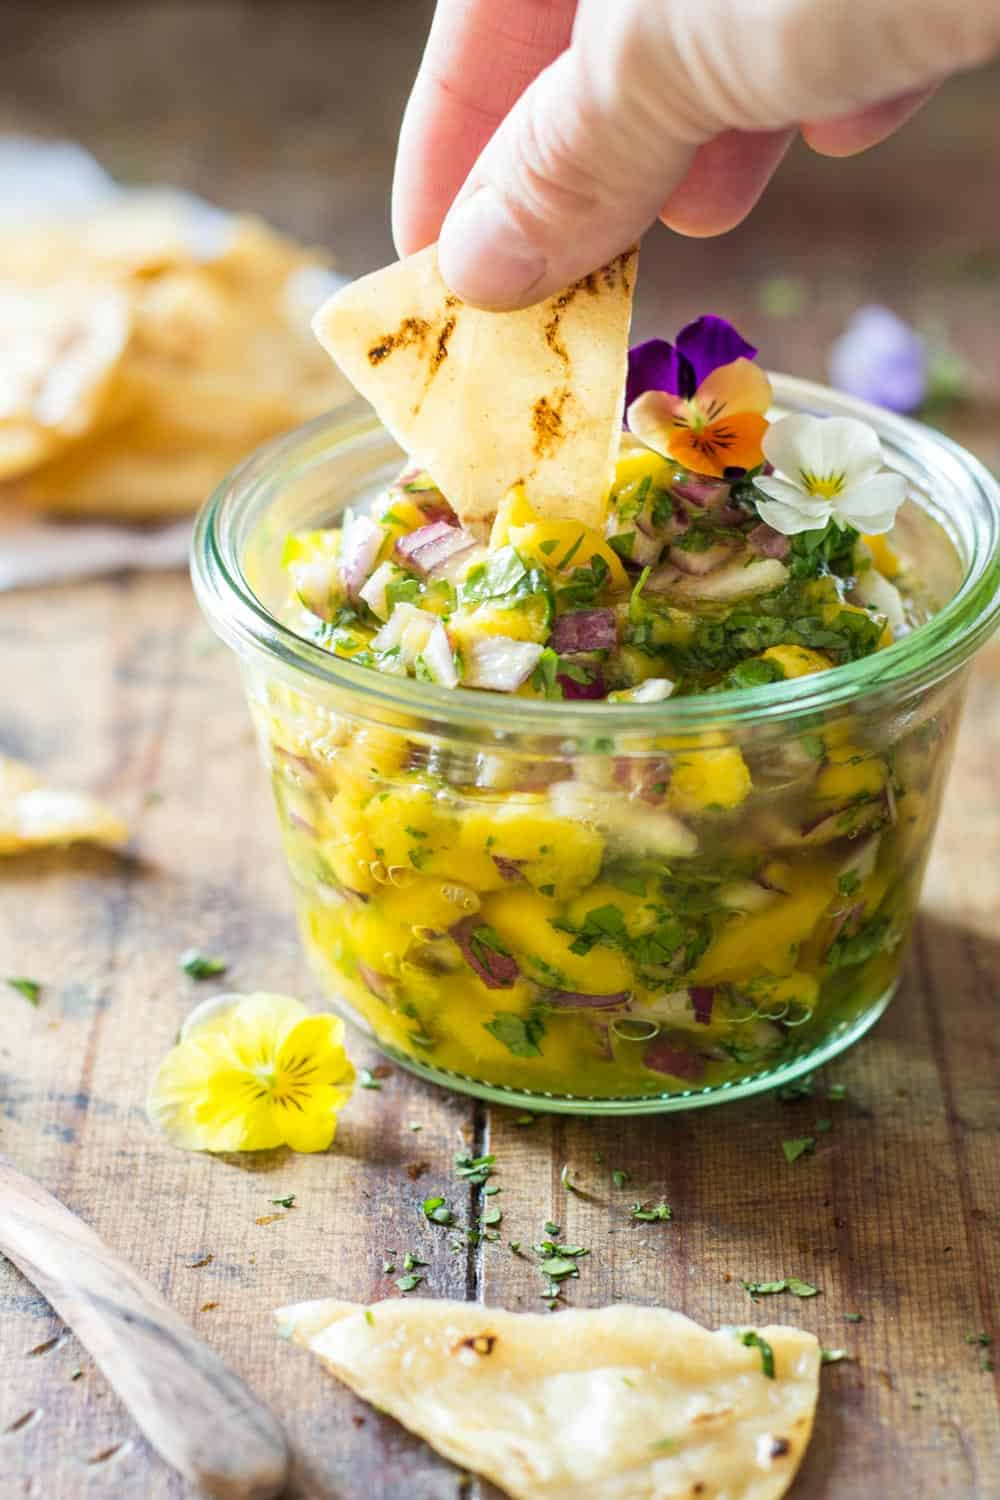 This is not just any Mango Salsa, it is a kid-friendly Mango Salsa that makes the kids eat raw onion. Say what?! It's healthy, sweet, and delicious, too!